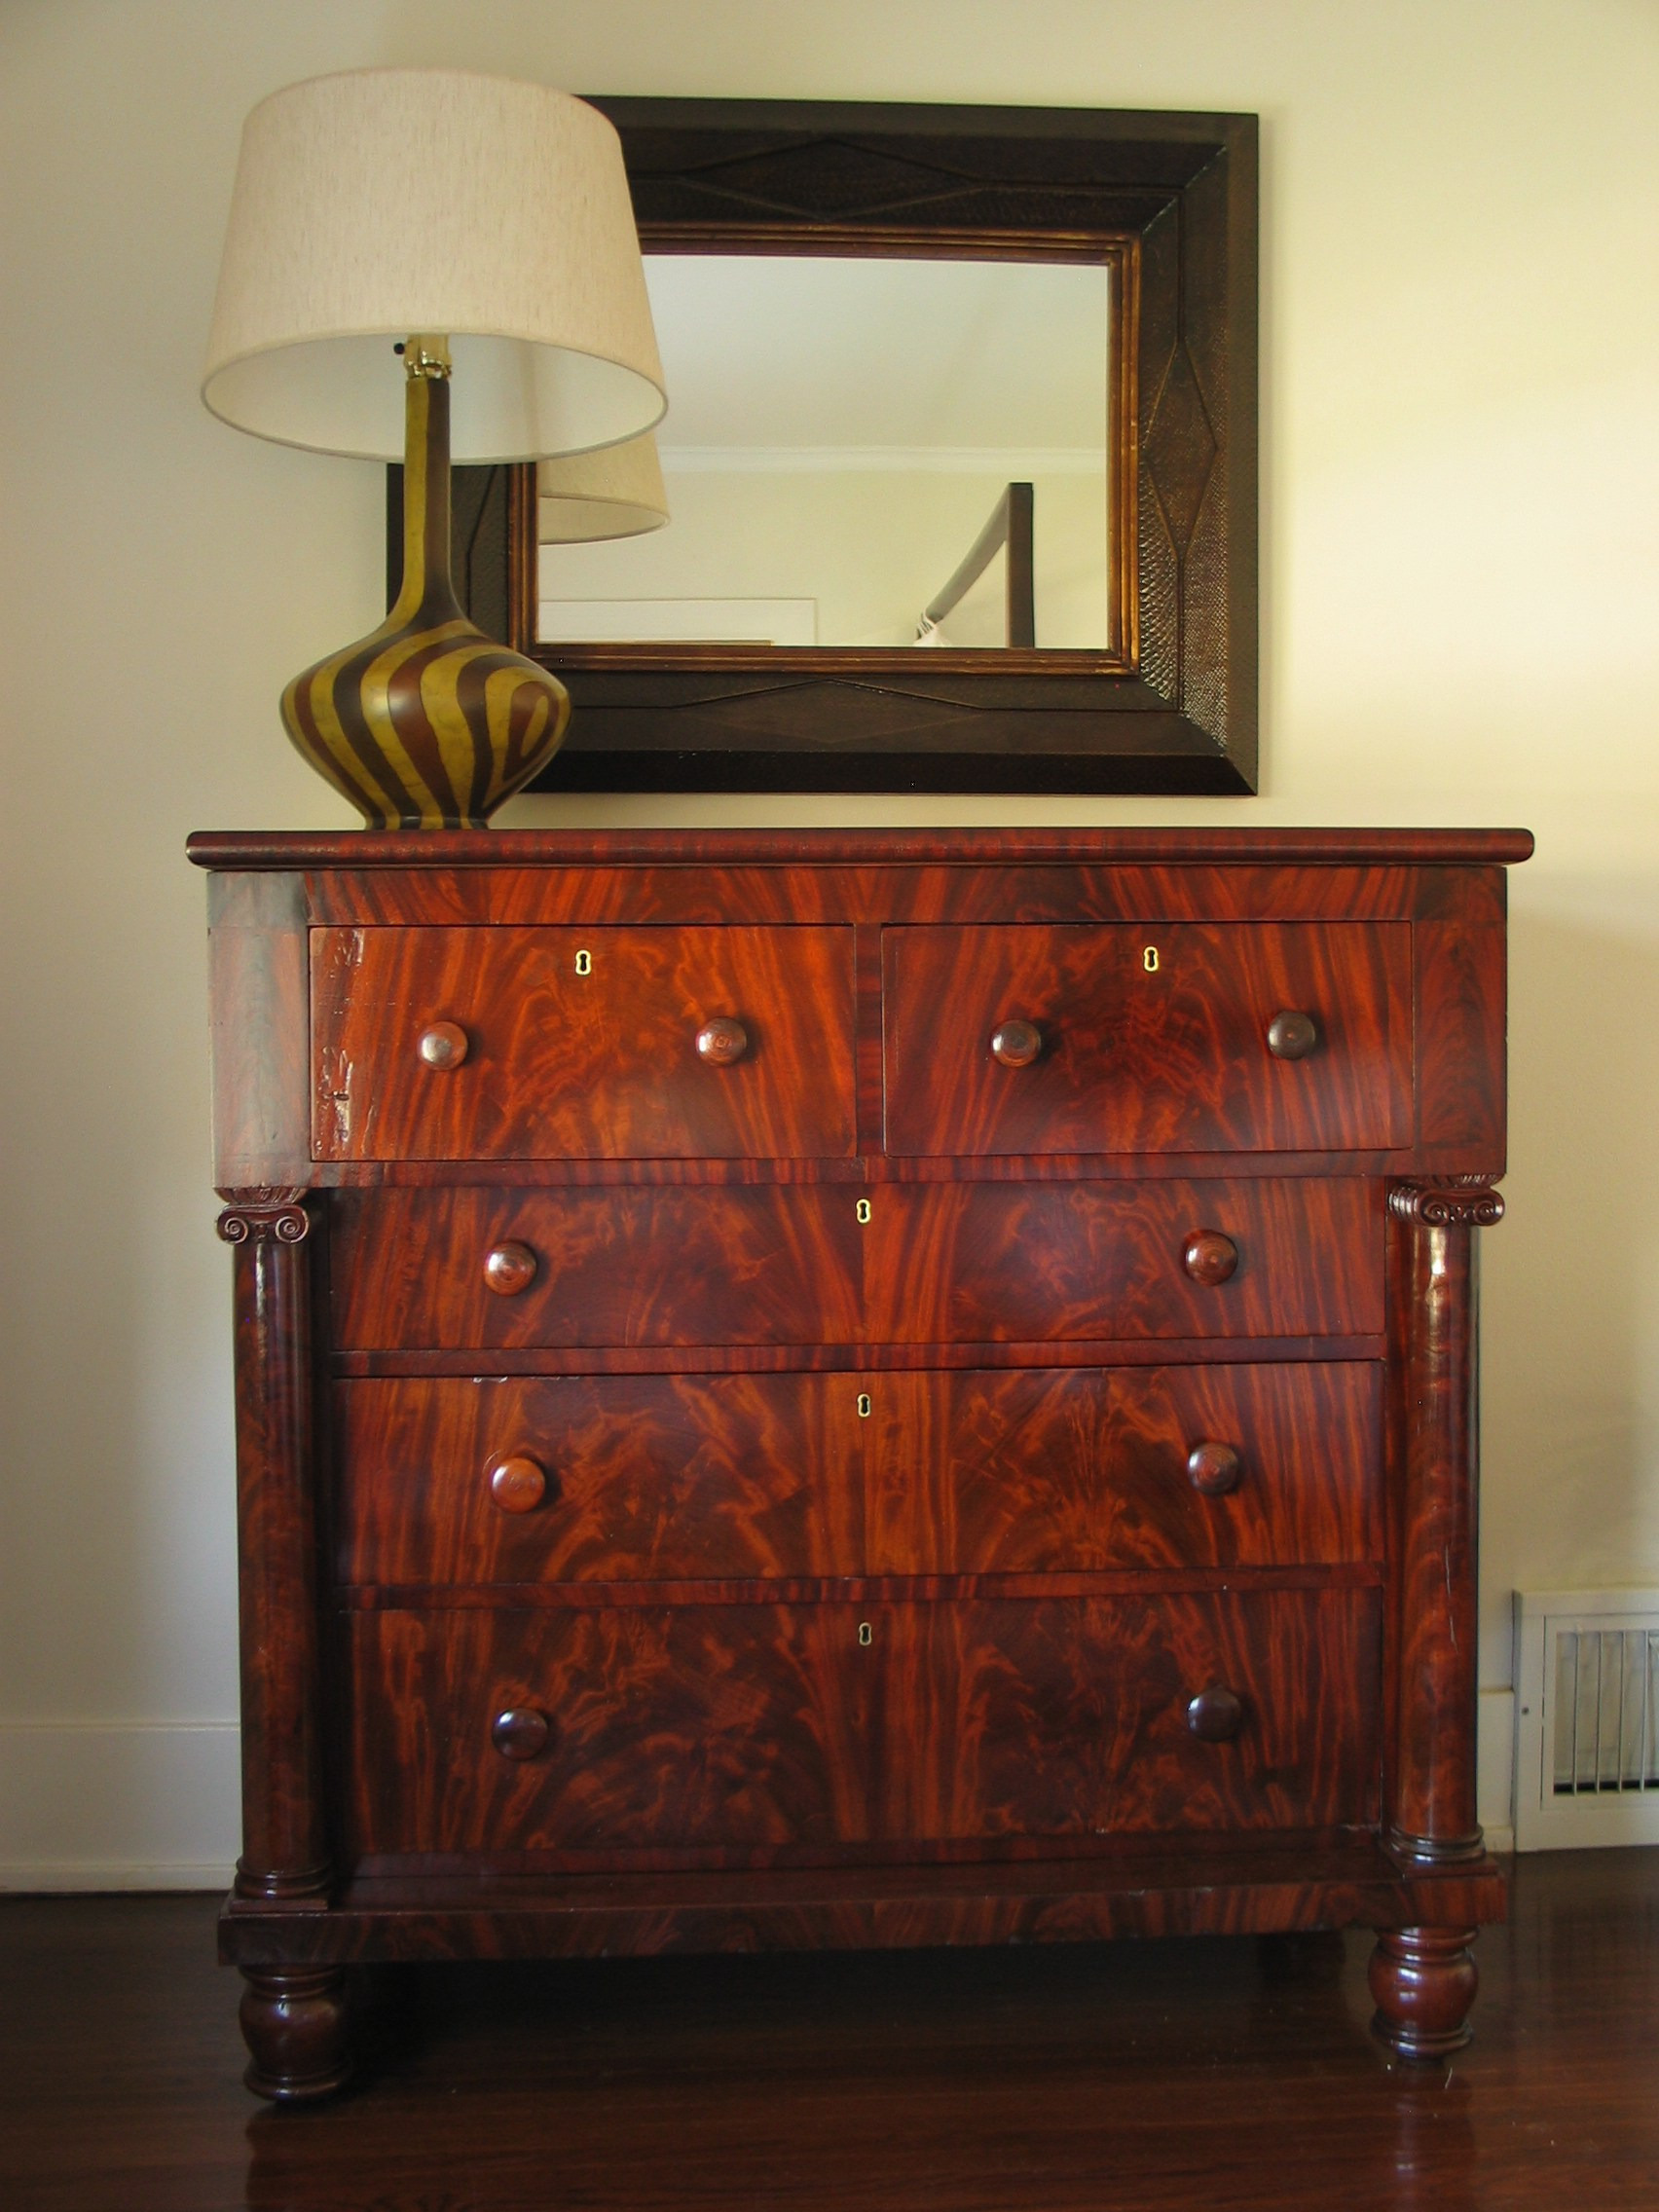 Restored mid nineteenth century Empire chest of drawers